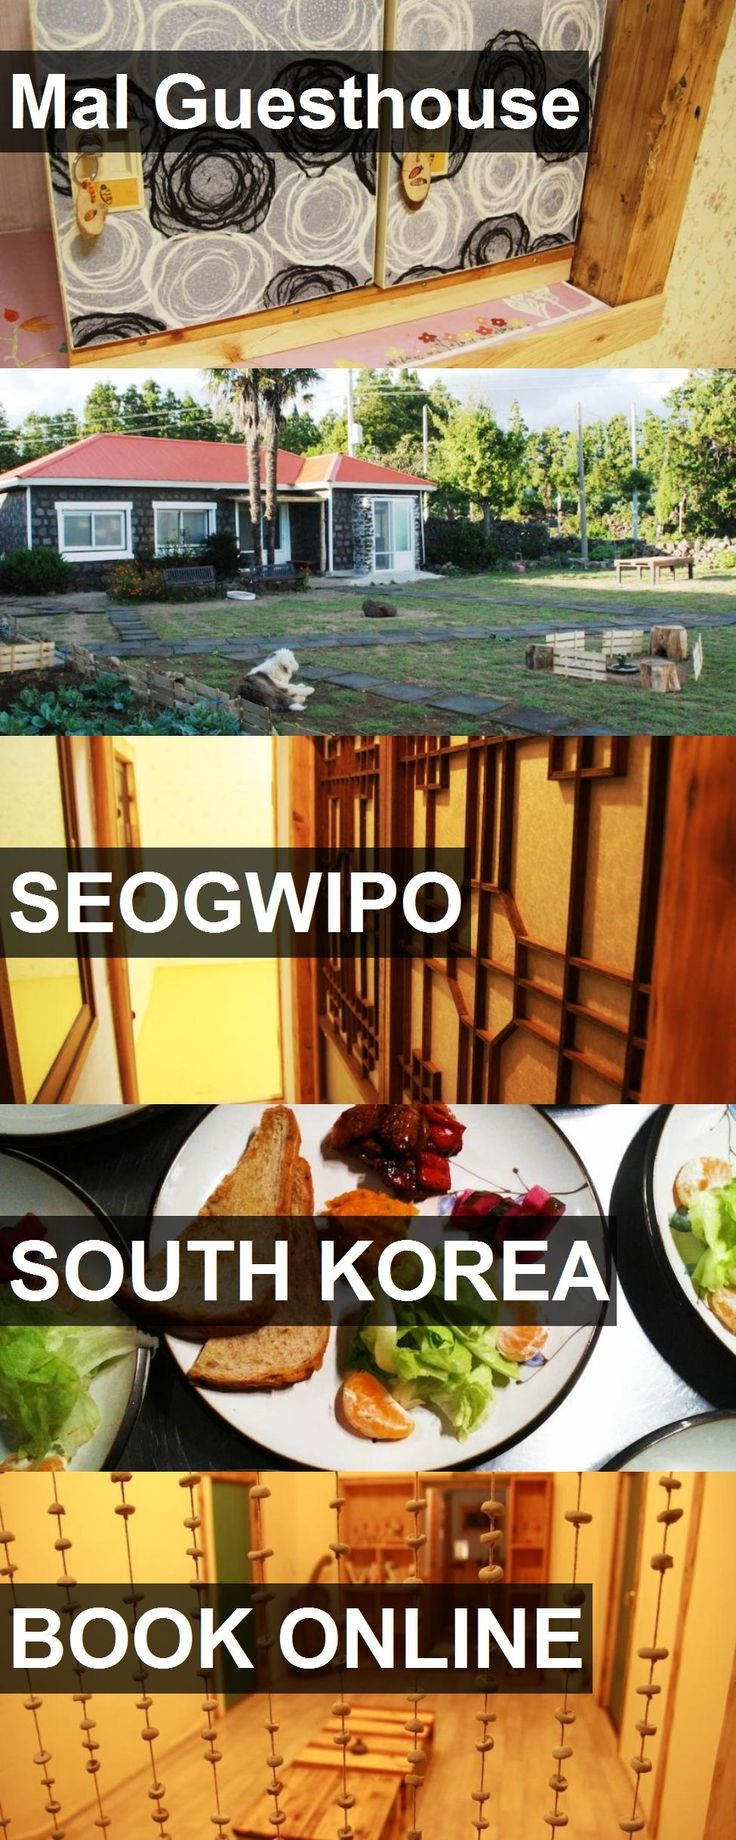 Hotel Mal Guesthouse in Seogwipo, South Korea. For more information, photos, reviews and best prices please follow the link. #SouthKorea #Seogwipo #travel #vacation #hotel